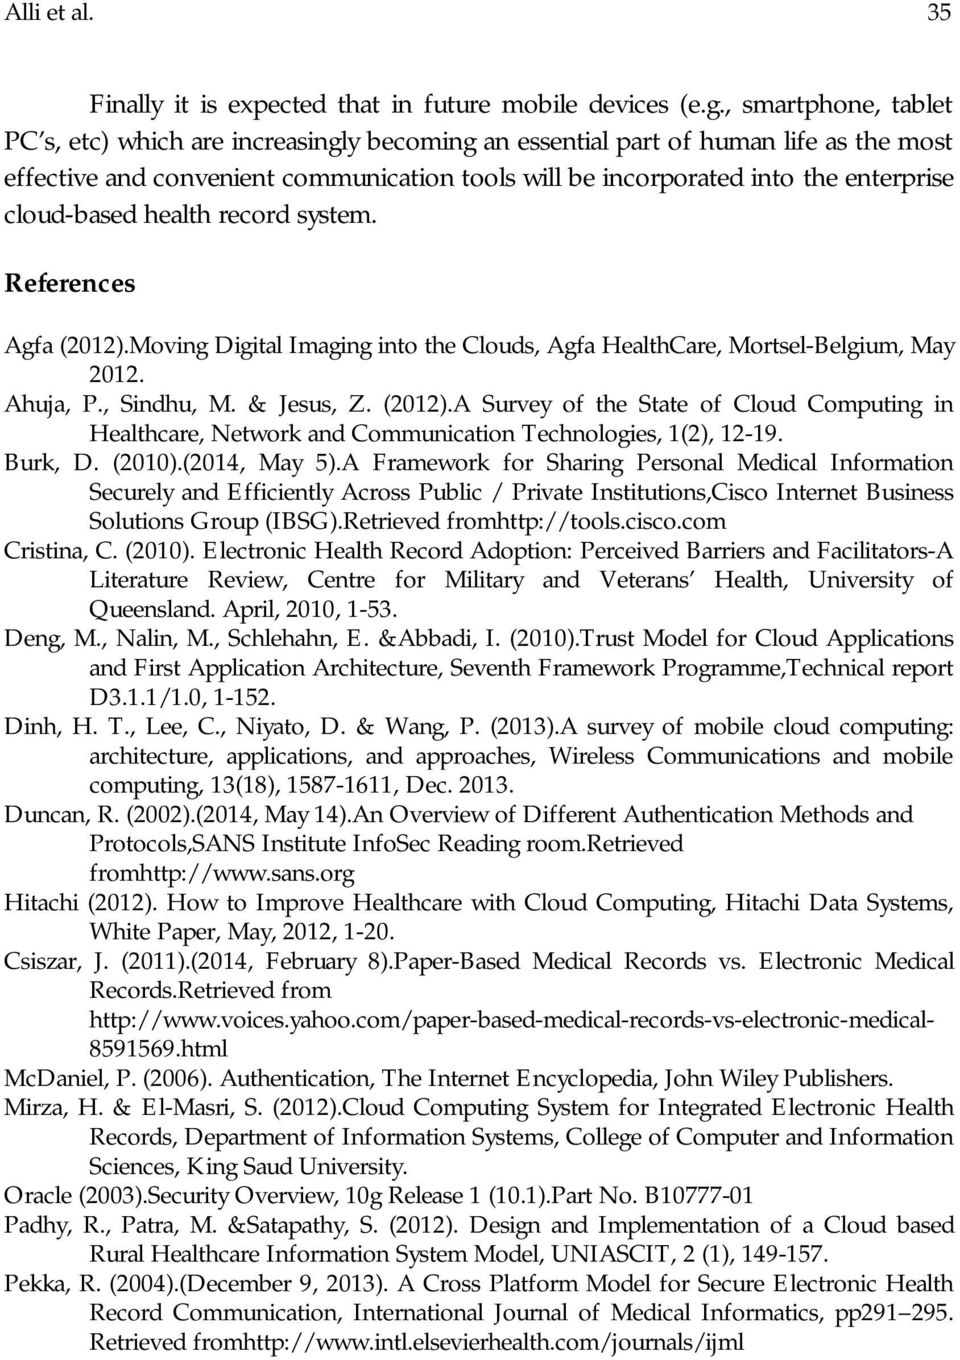 cloud-based health record system. References Agfa (2012).Moving Digital Imaging into the Clouds, Agfa HealthCare, Mortsel-Belgium, May 2012. Ahuja, P., Sindhu, M. & Jesus, Z. (2012).A Survey of the State of Cloud Computing in Healthcare, Network and Communication Technologies, 1(2), 12-19.